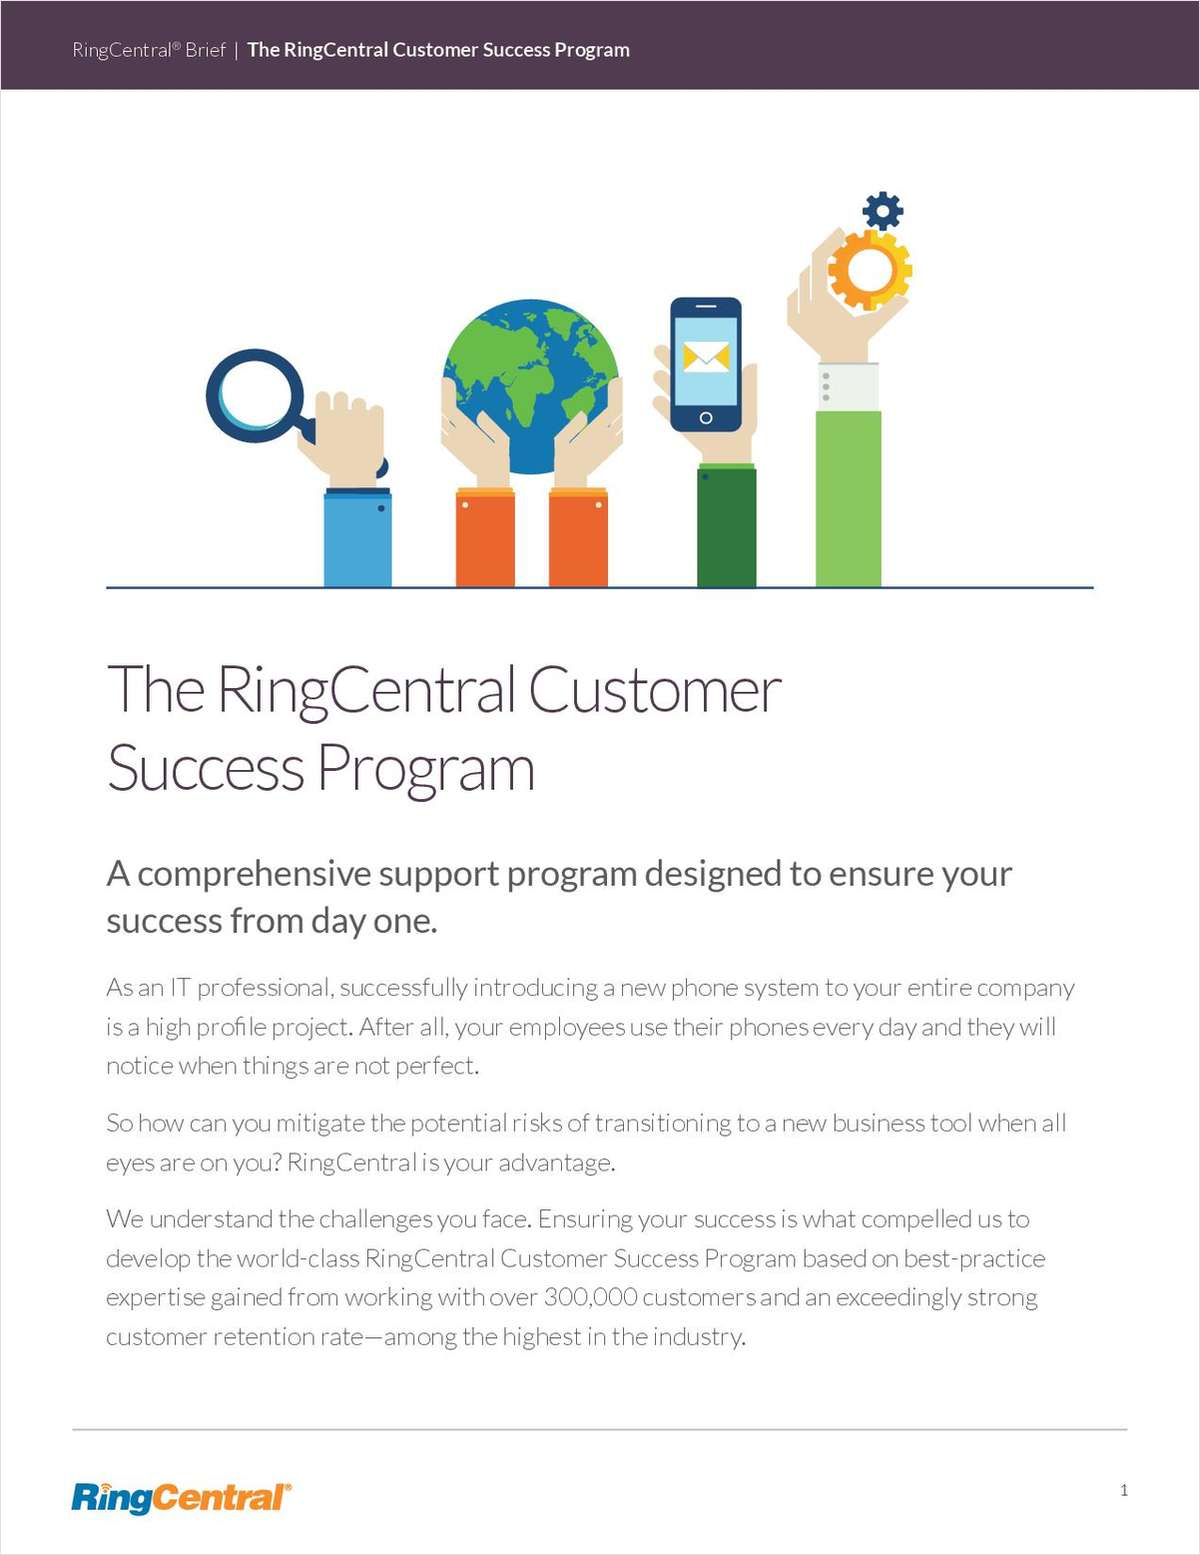 The RingCentral Customer Success Program